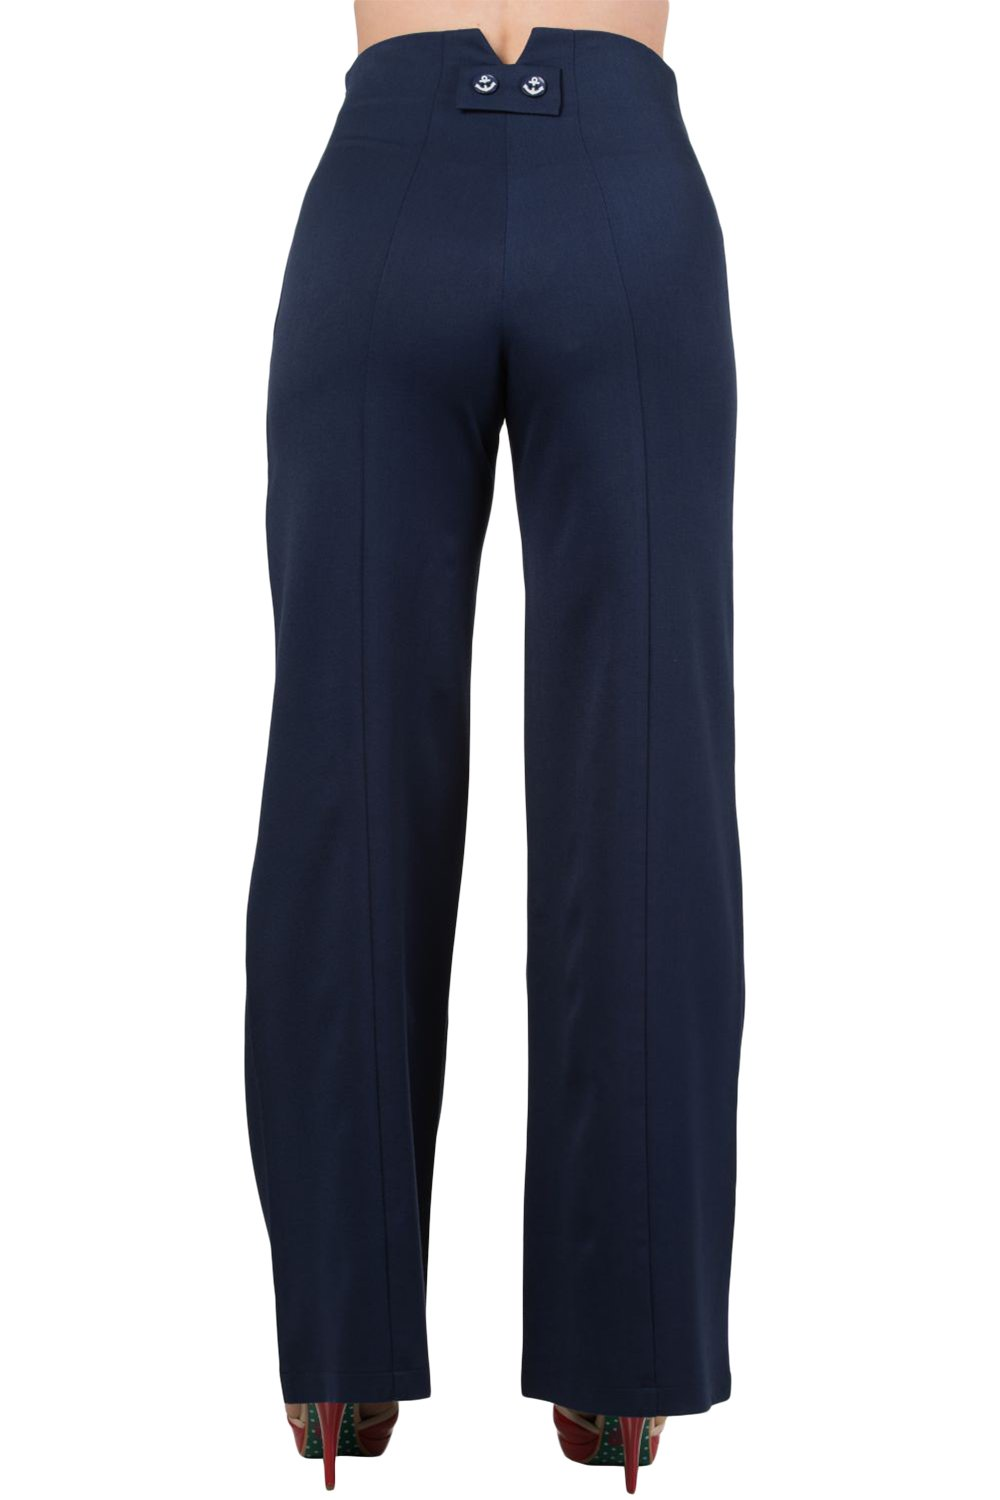 Banned 50's Vintage Sailor High Waist Double Buttoned Wide Leg bell flare Pants (S, Navy) by Banned Apparel (Image #2)